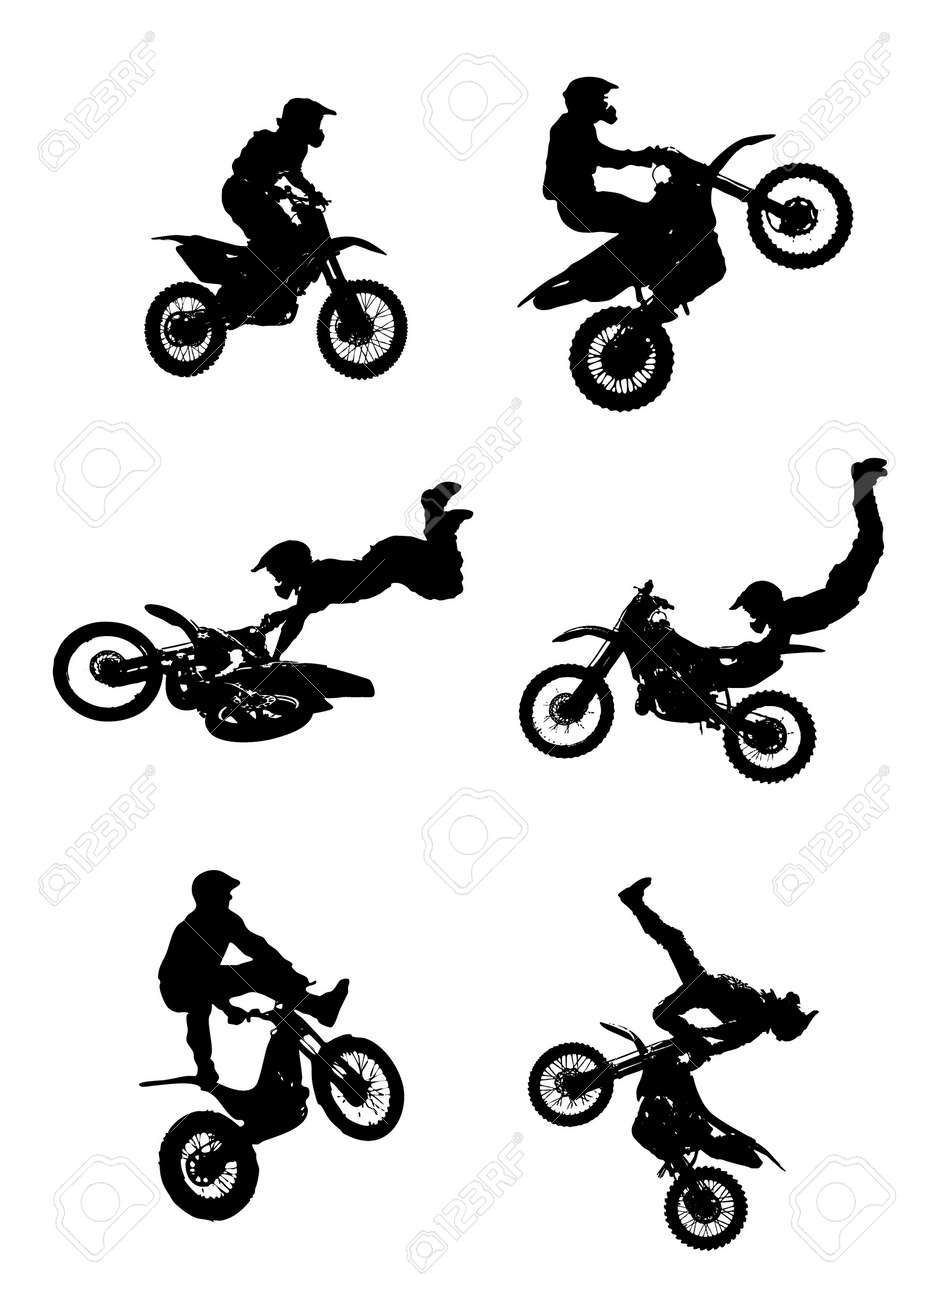 Jumping Motorcycle Stock Vector - 6874361